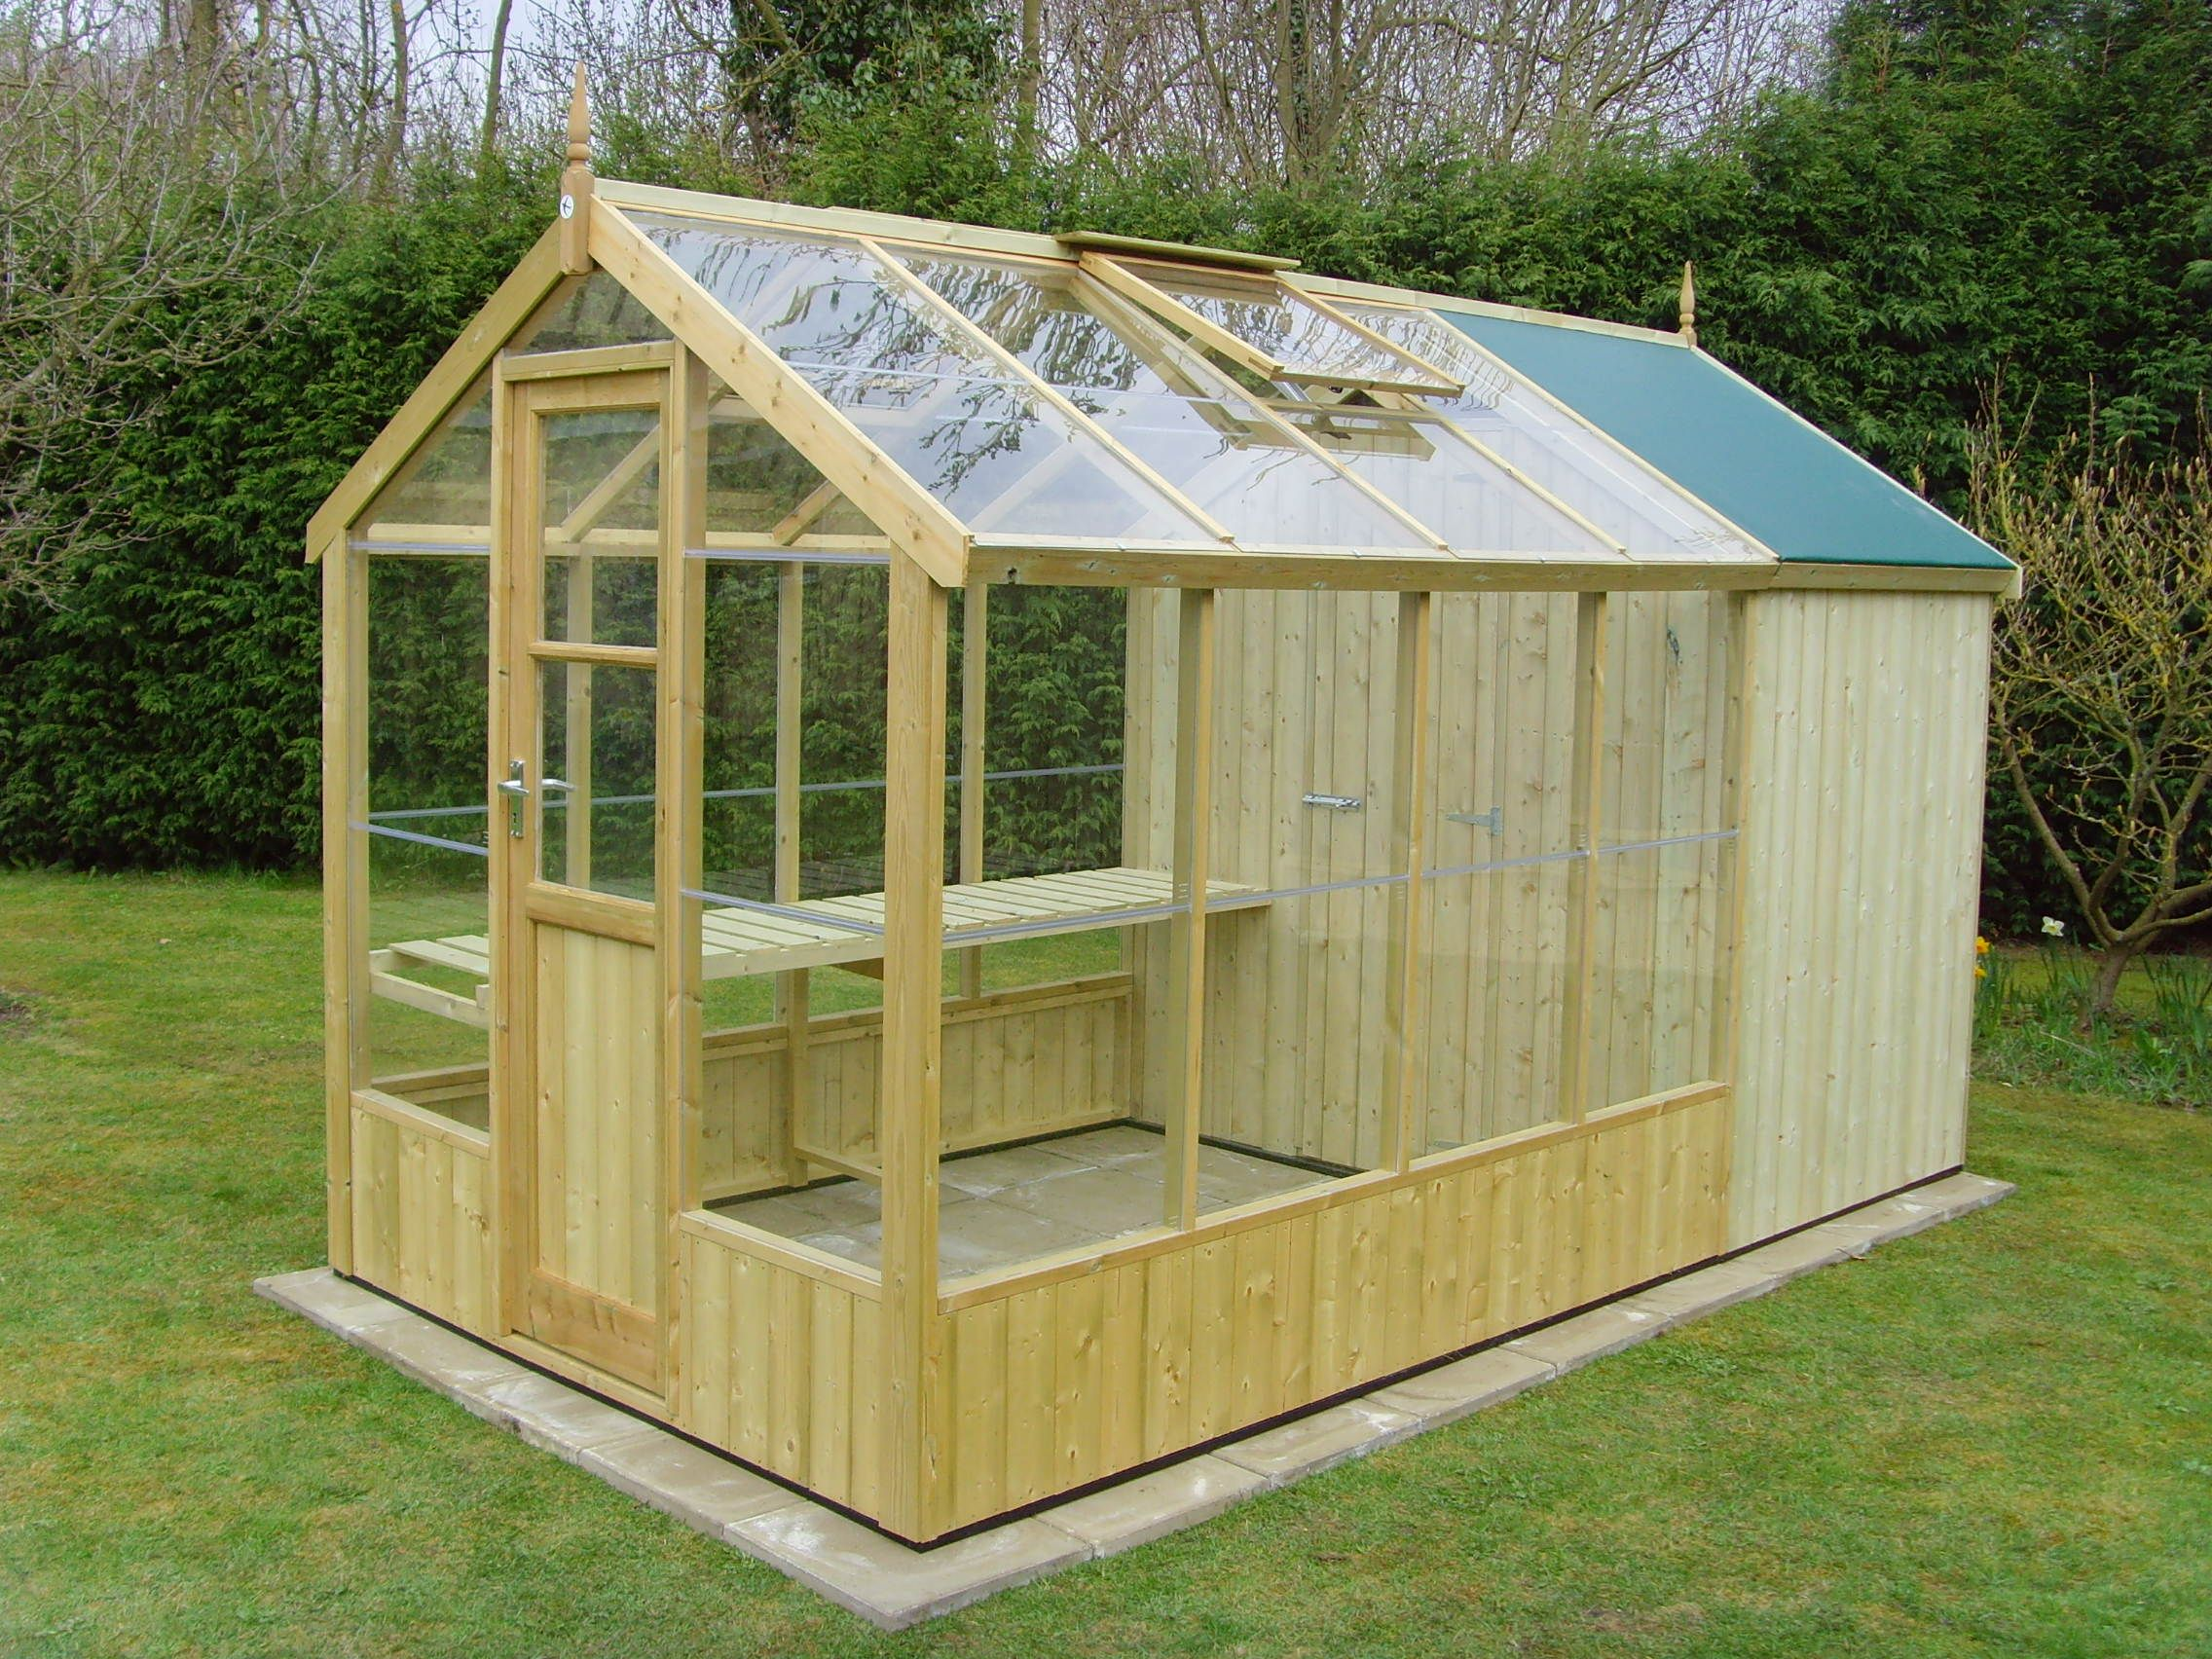 A frame greenhouse plans 8x12 google search garden for Greenhouse design plans